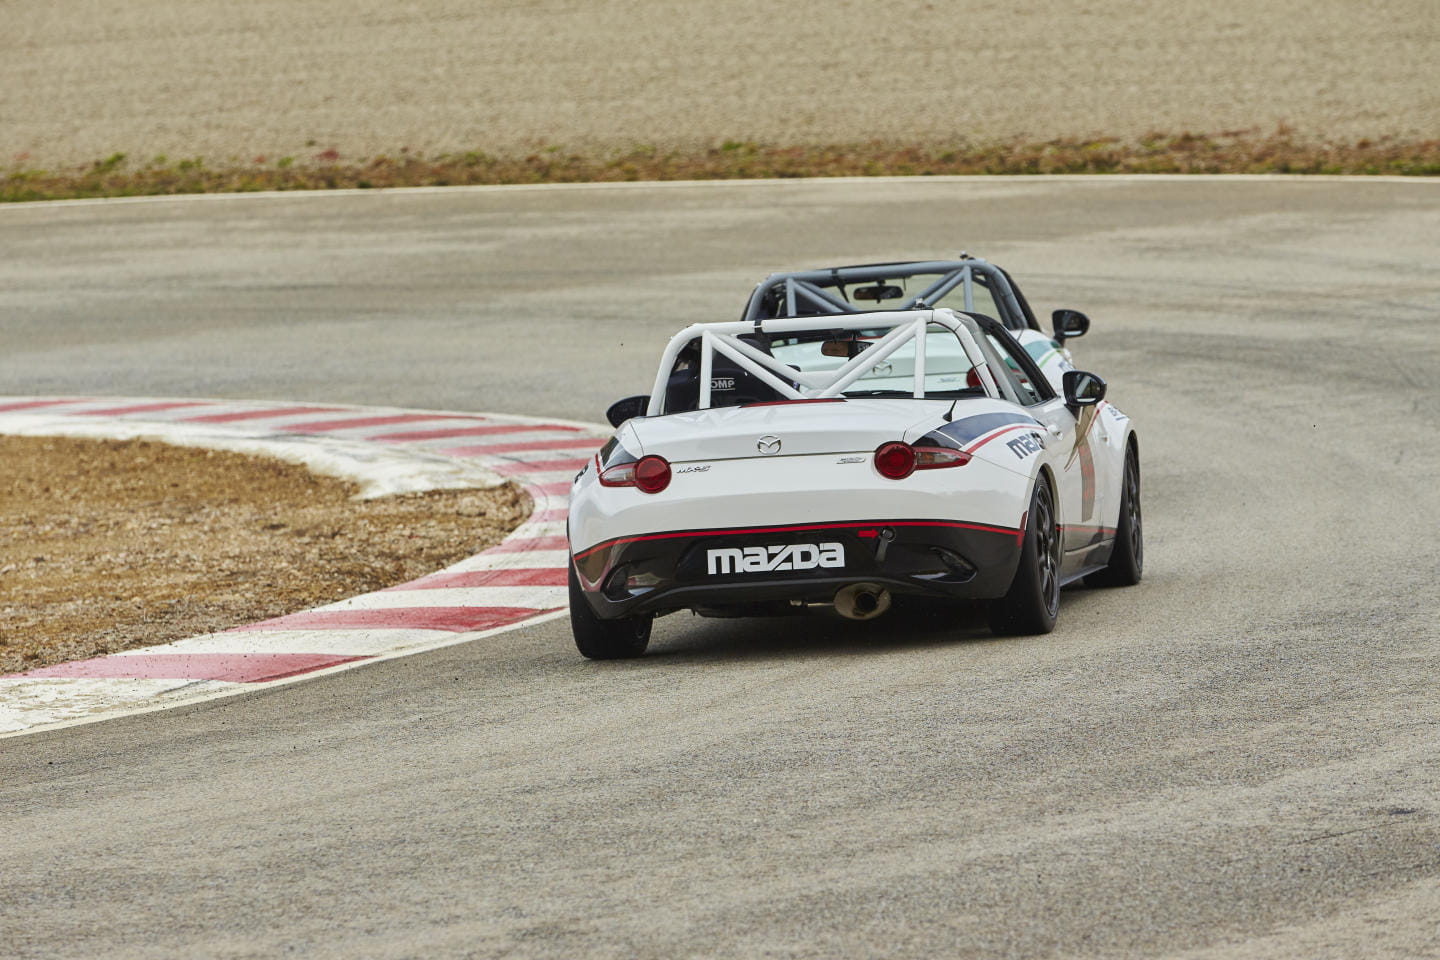 Mazda_MX-5_cup_2016_Claves_DM_9